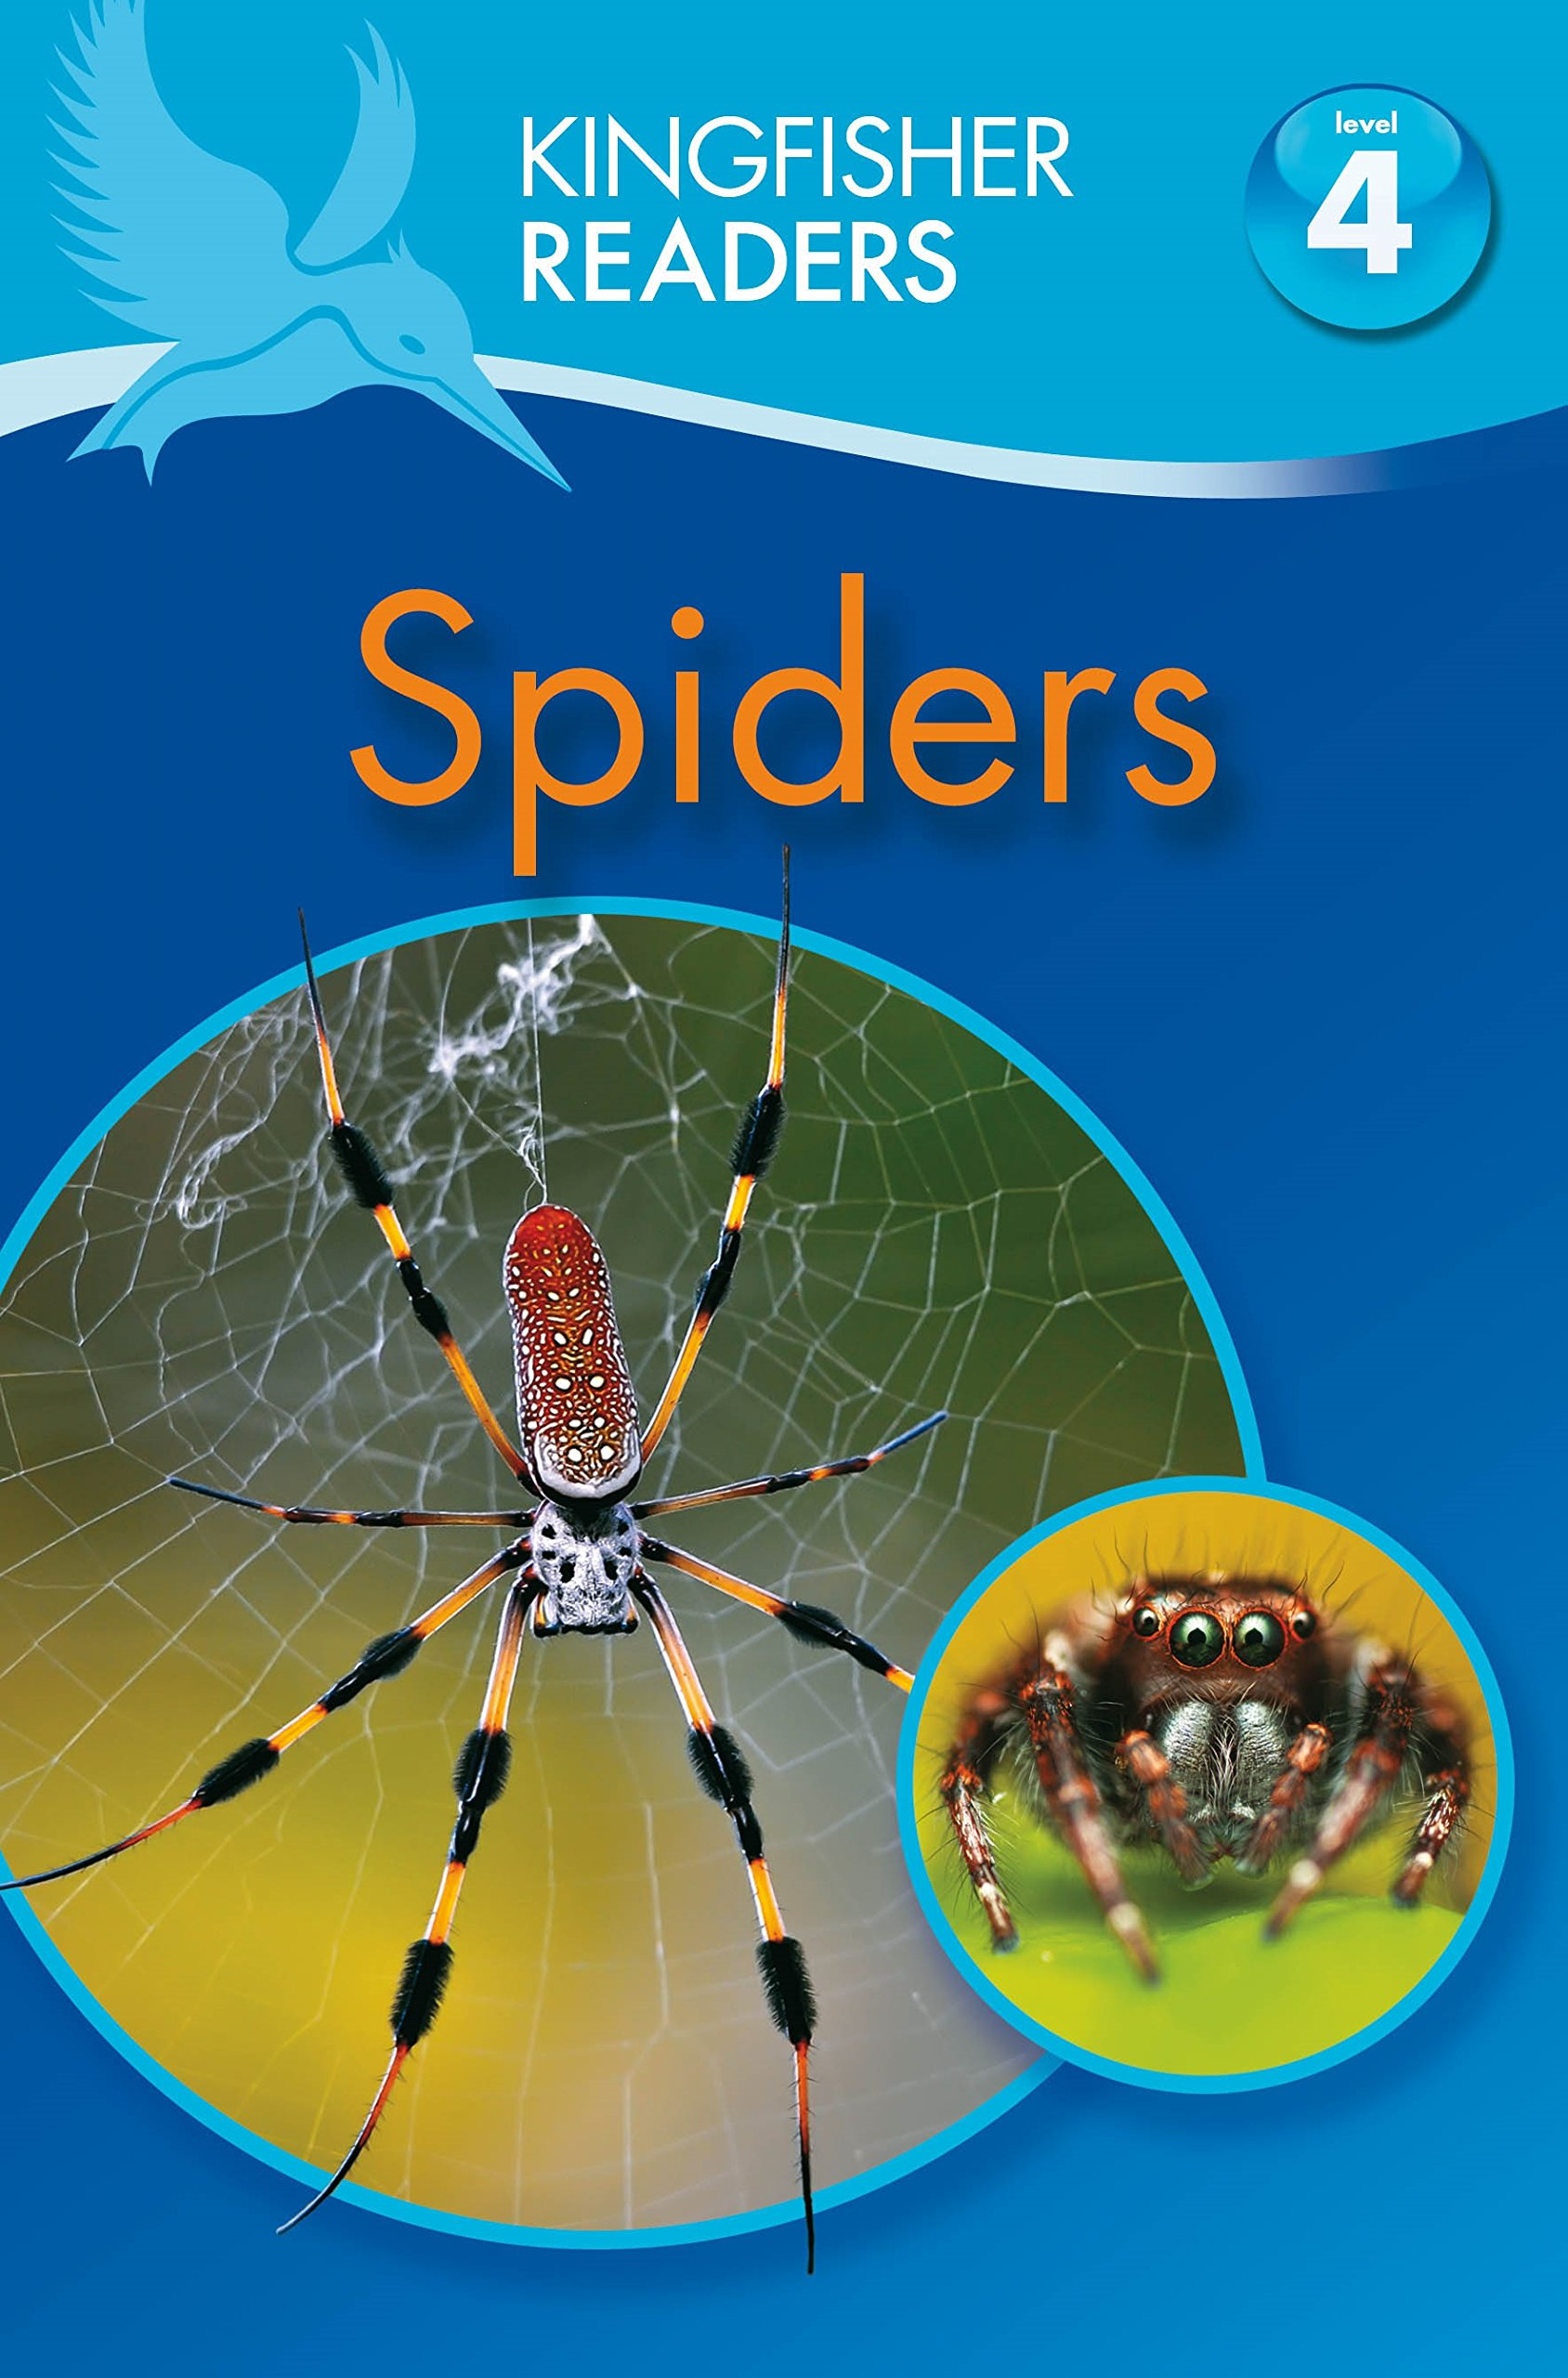 Kingfisher Readers: Spiders (Level 4: Reading Alone) reading literacy for adolescents